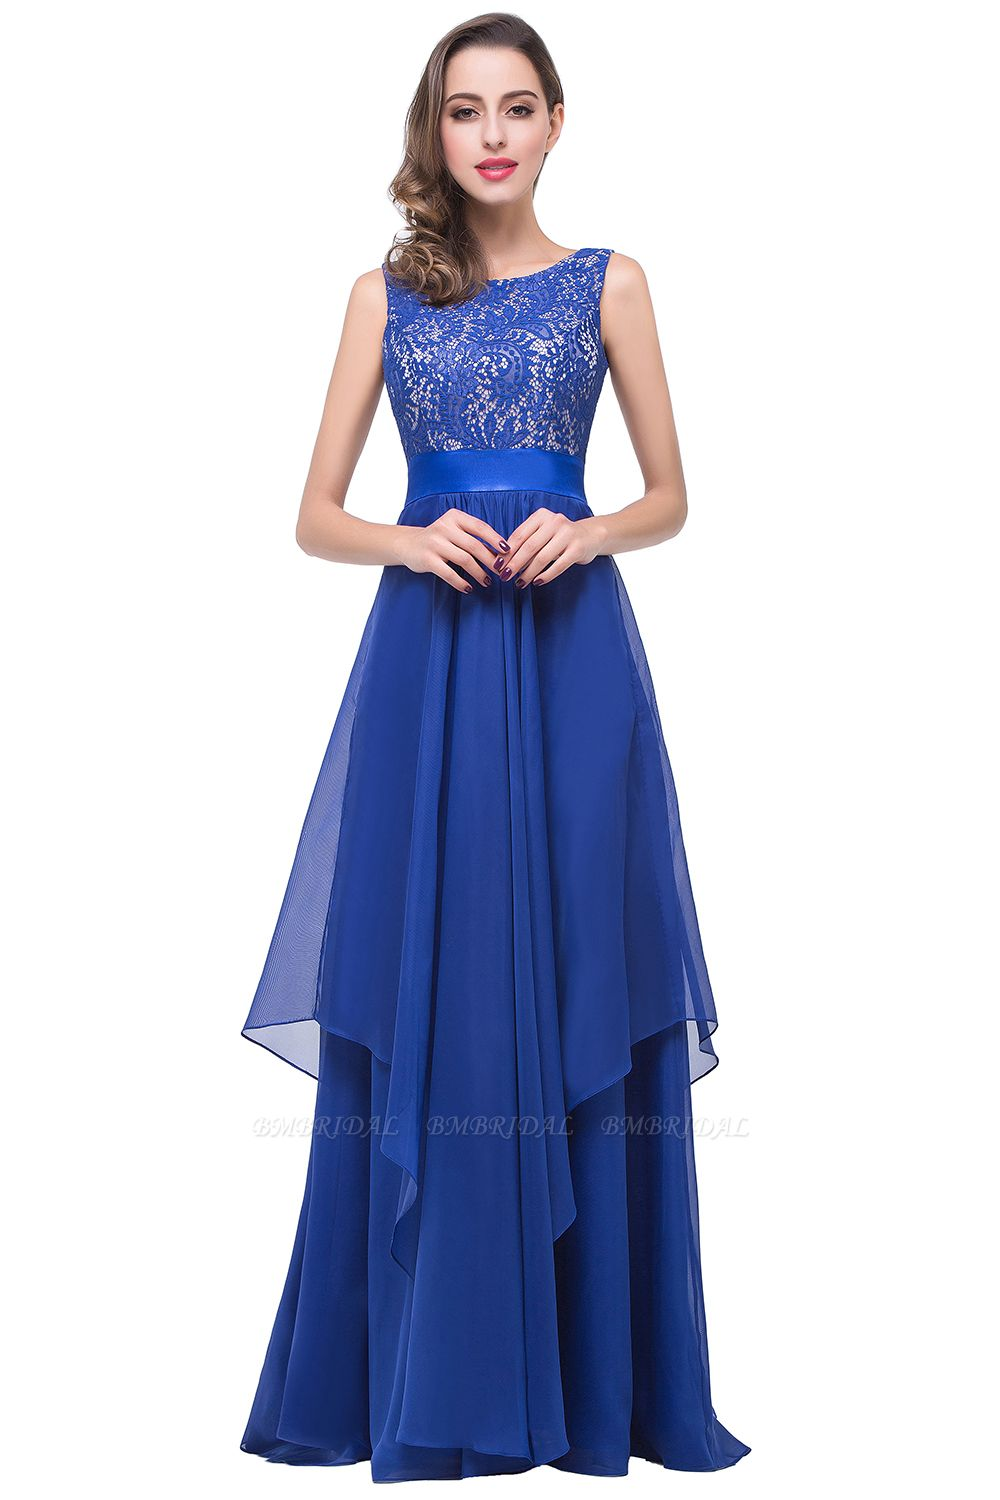 Exquisite A-line Chiffon Royal Blue Bridesmaid Dress with Lace In Stock